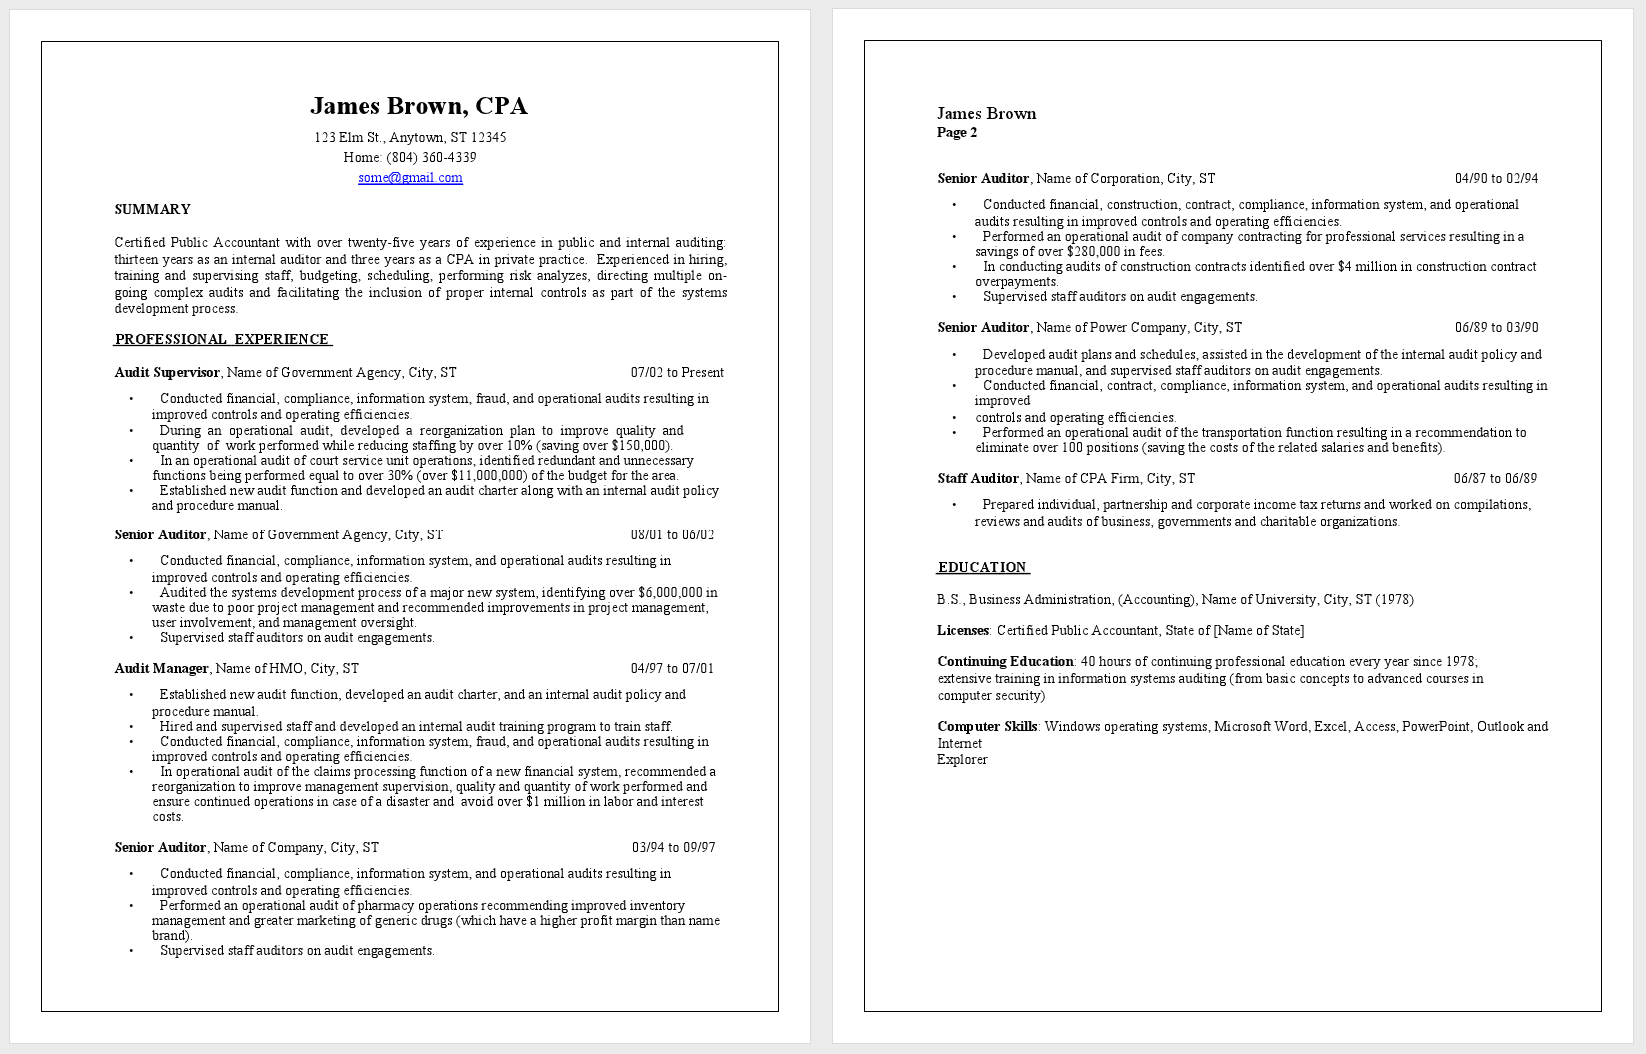 Reporter And Content Writer CV   rne  i